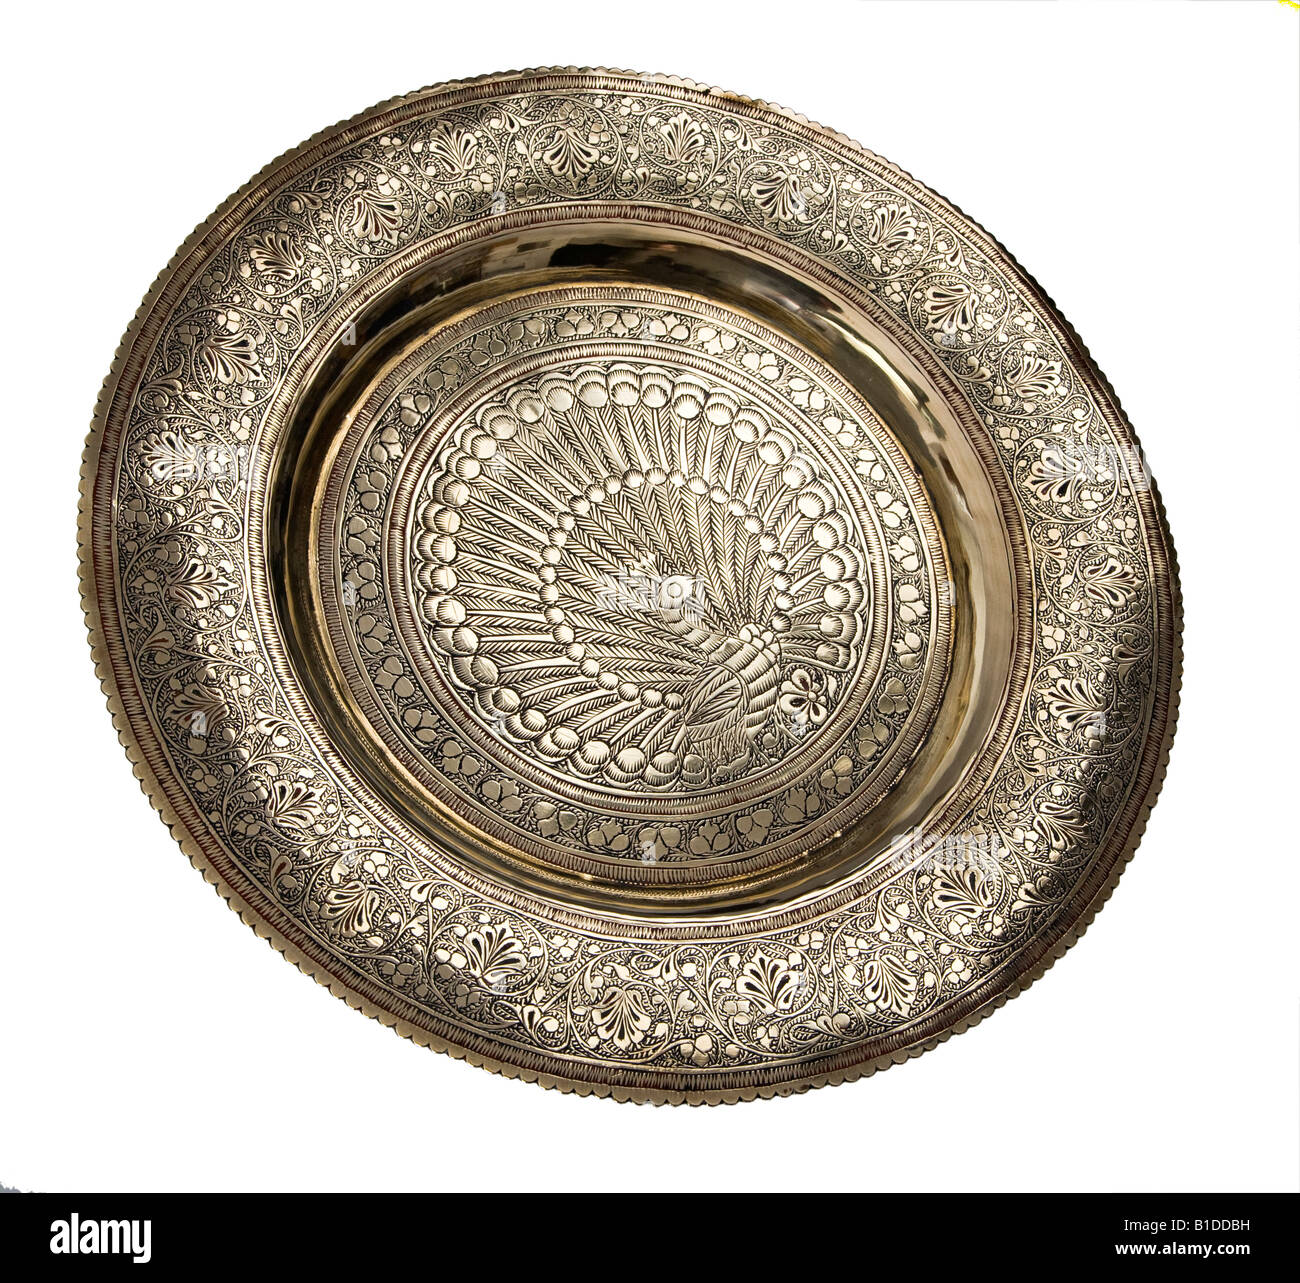 Antique Indian Metal Hand Engraved Brass Plate With Peacock Design Stock Photo Royalty Free